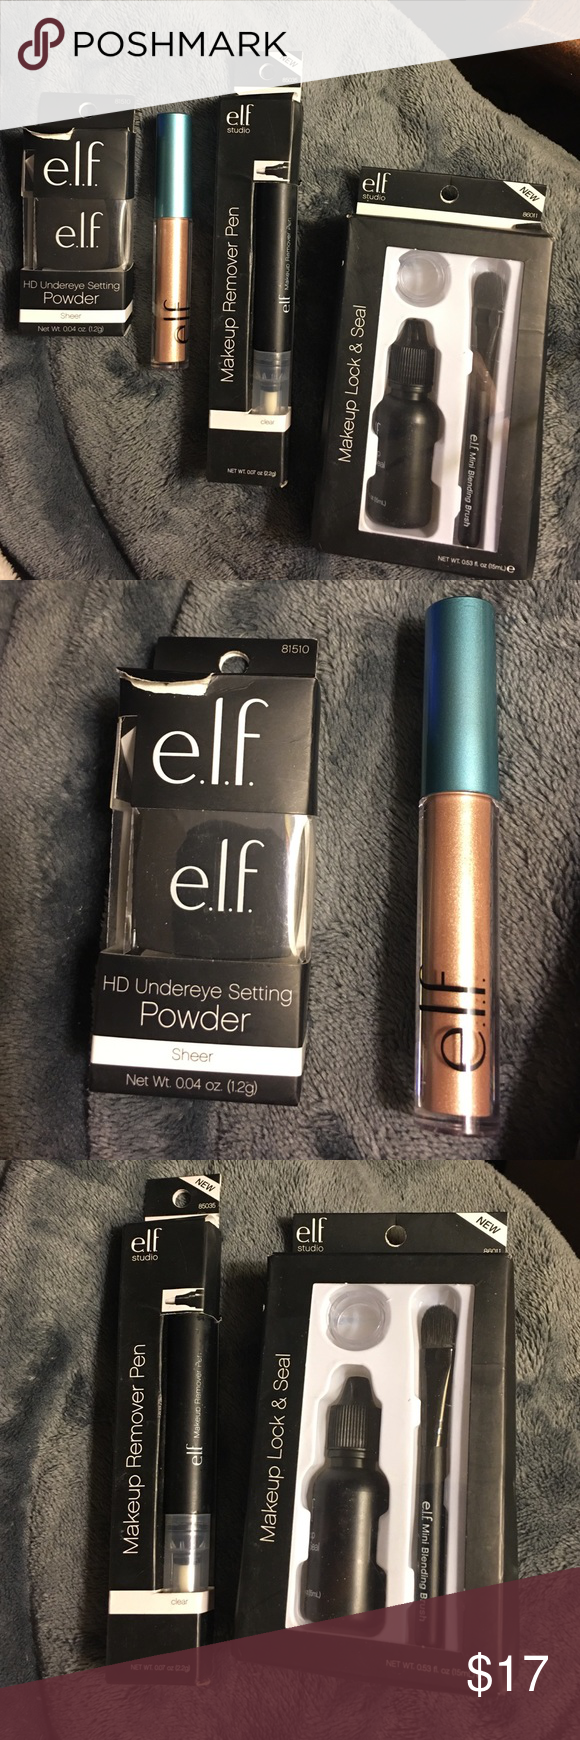 NWOT Elf 4 Products, only one opened, but not used NWOT